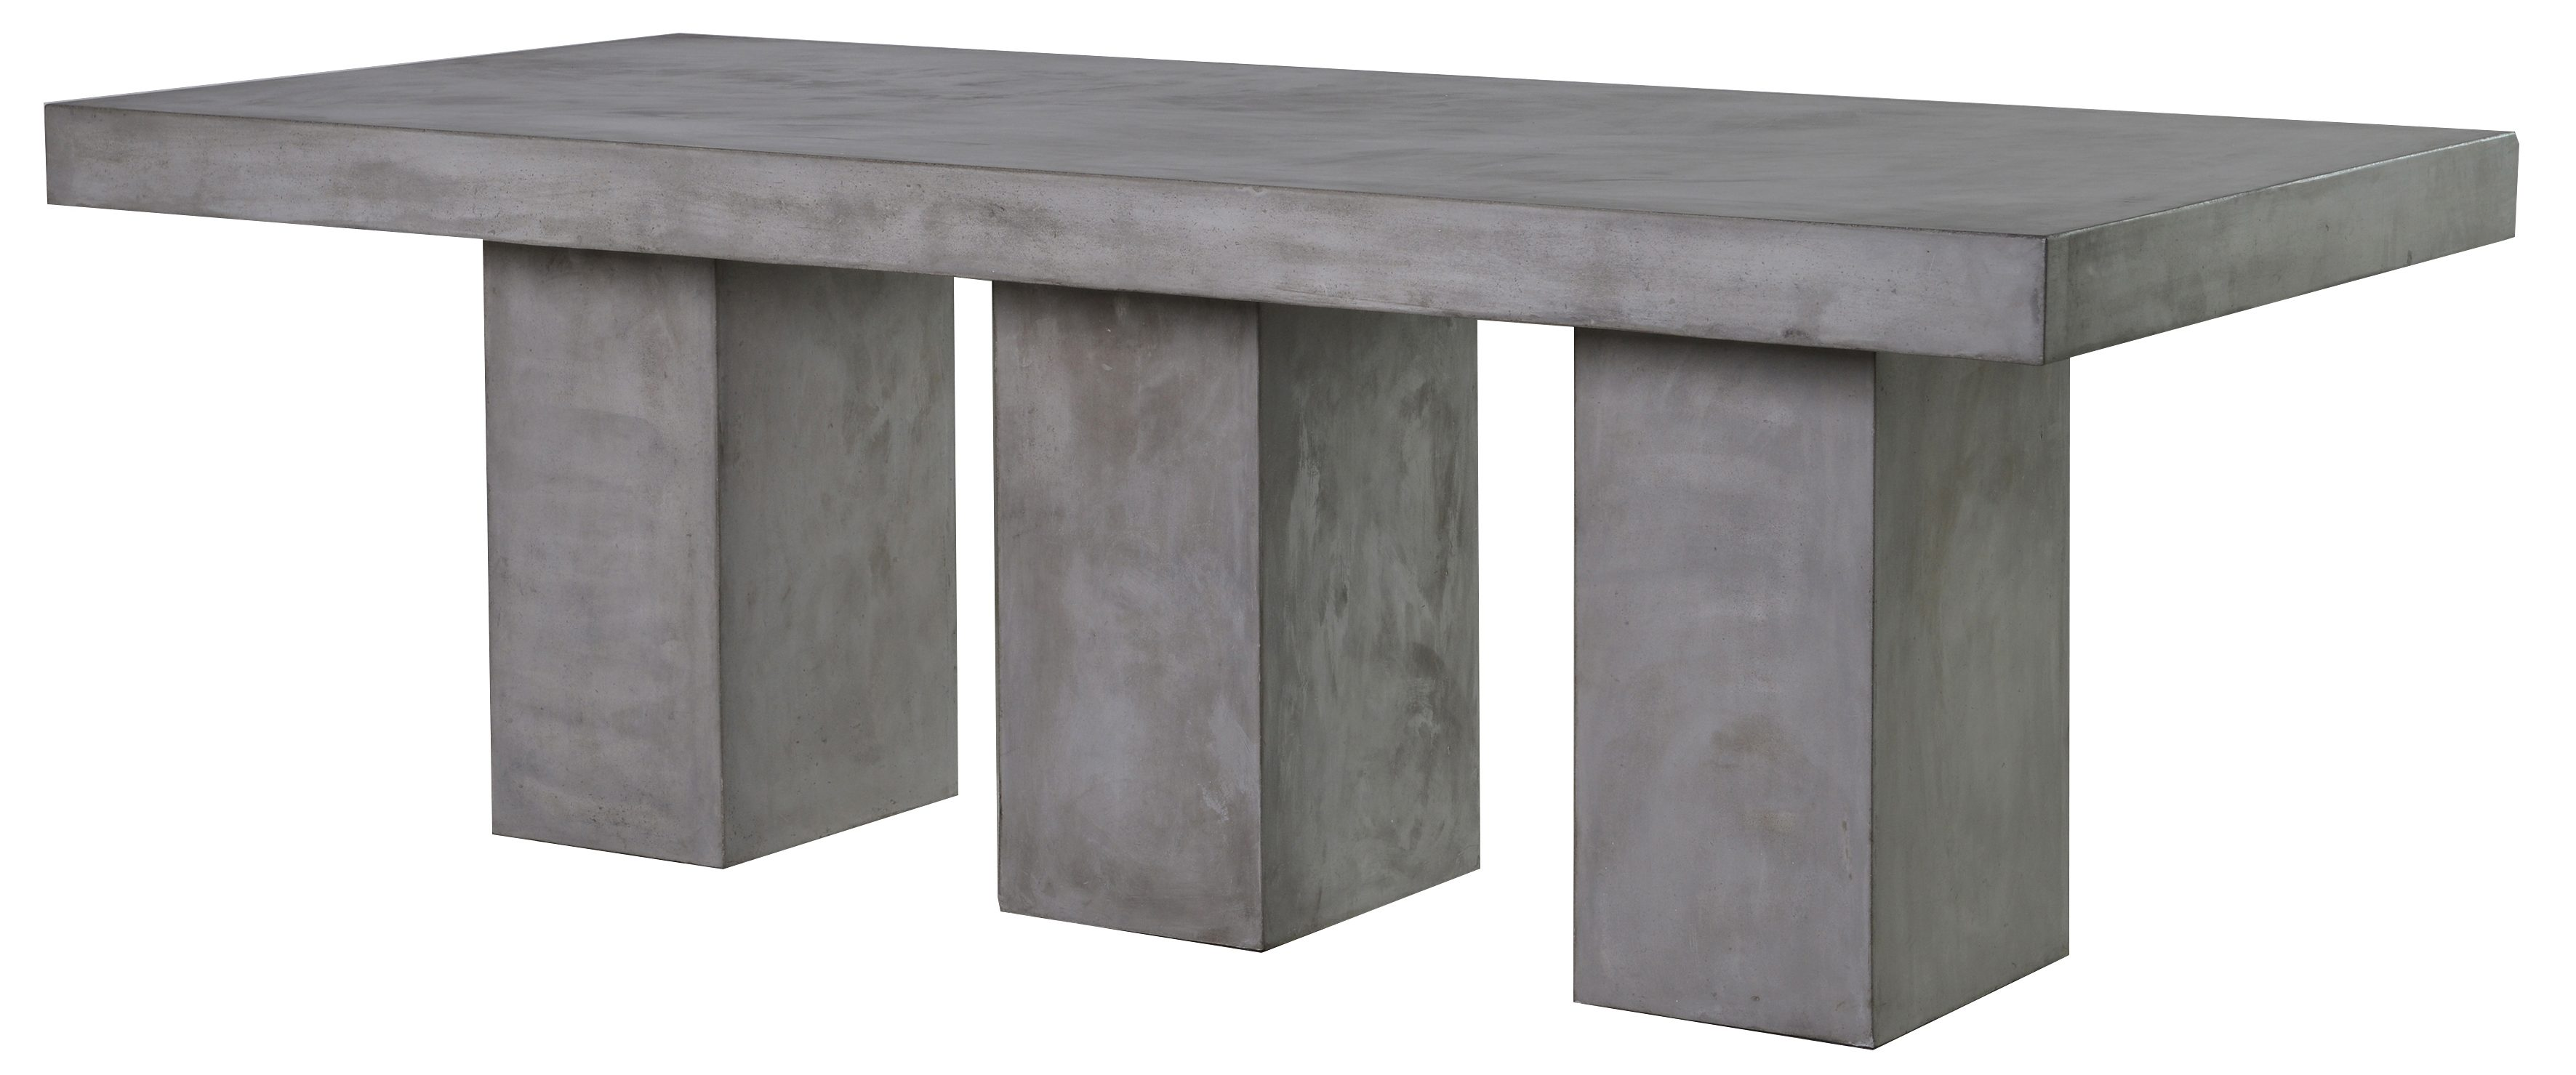 Rectangular concrete dining table £1250 from out there interiors